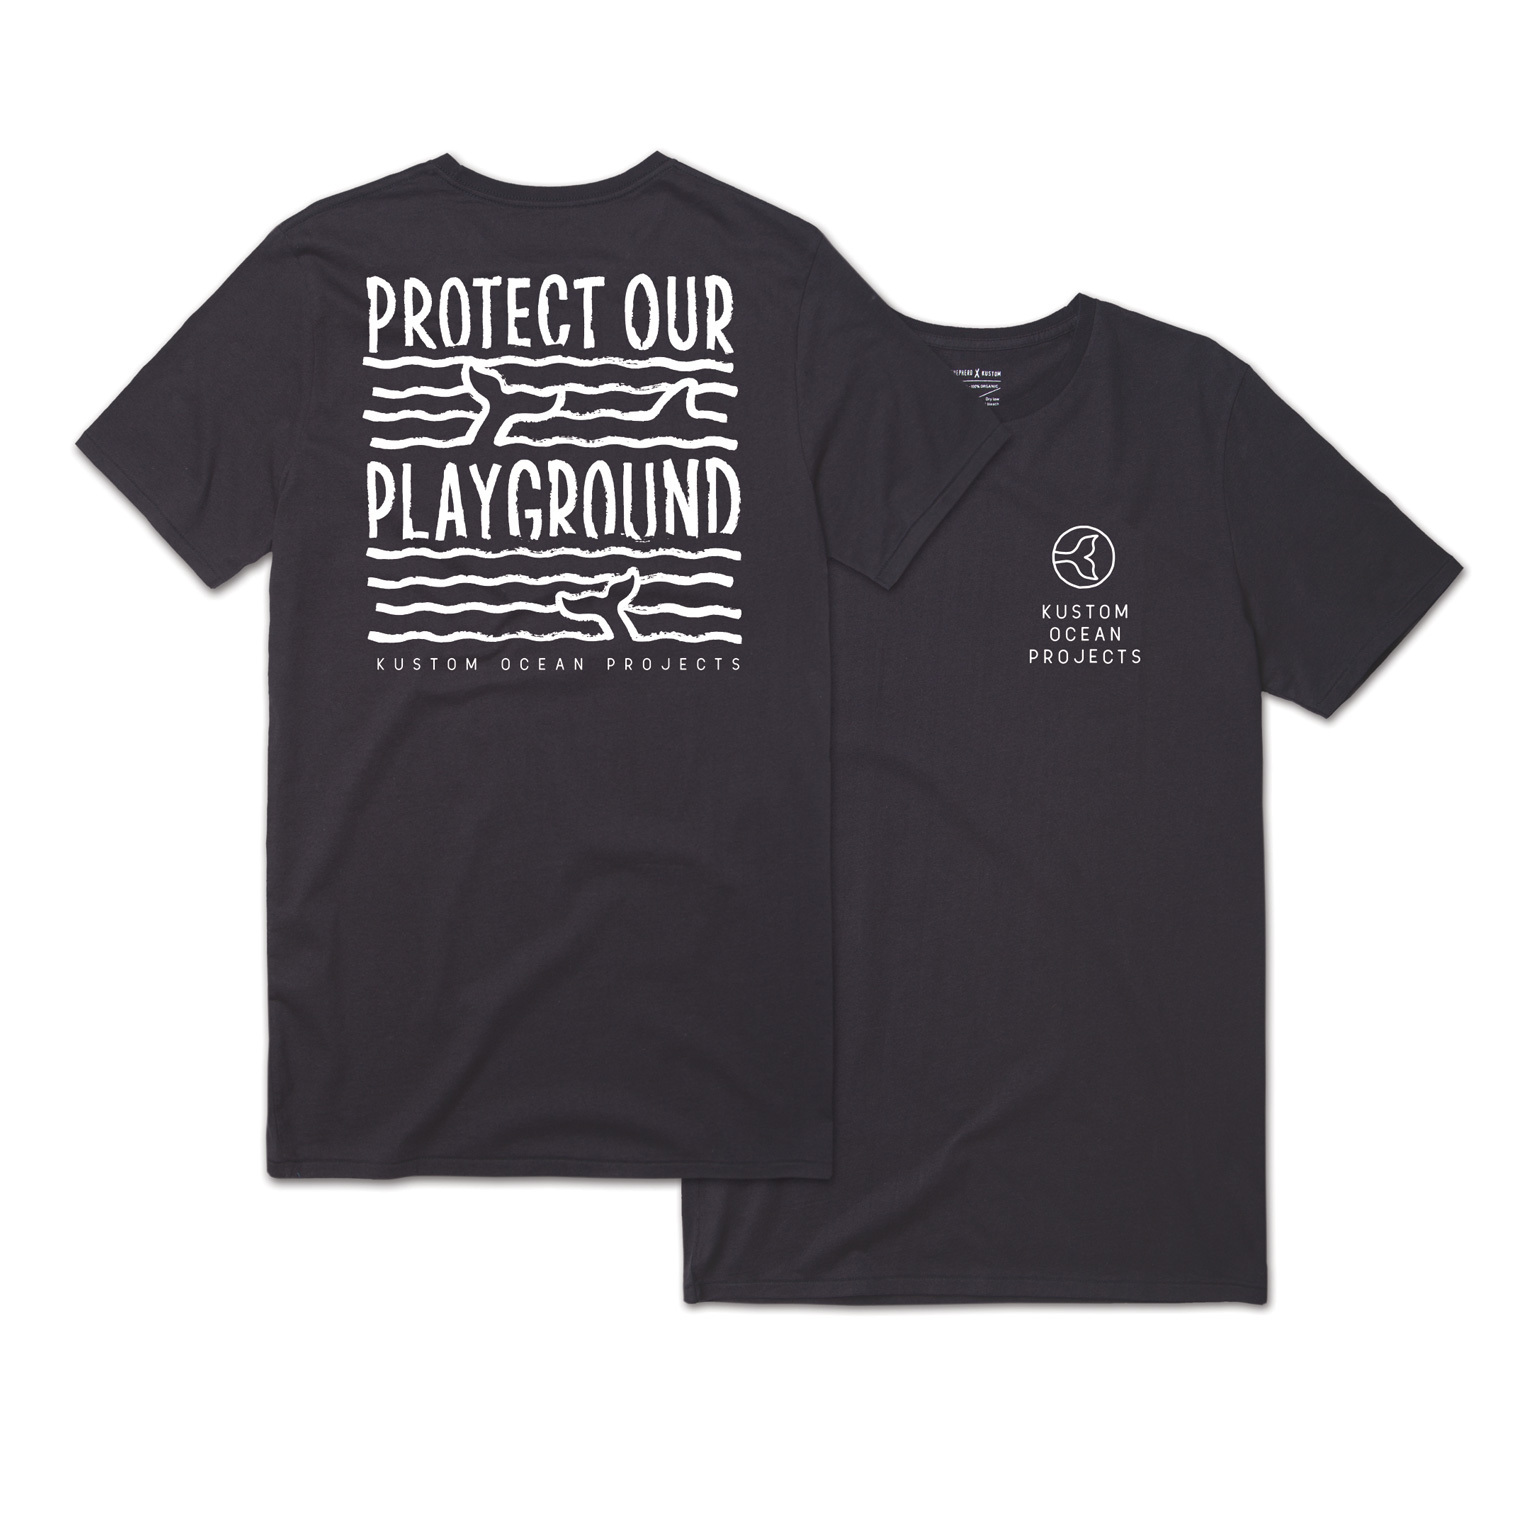 KUSTOM CLOTHING & ACCESSORIES PLAYGROUND TEE